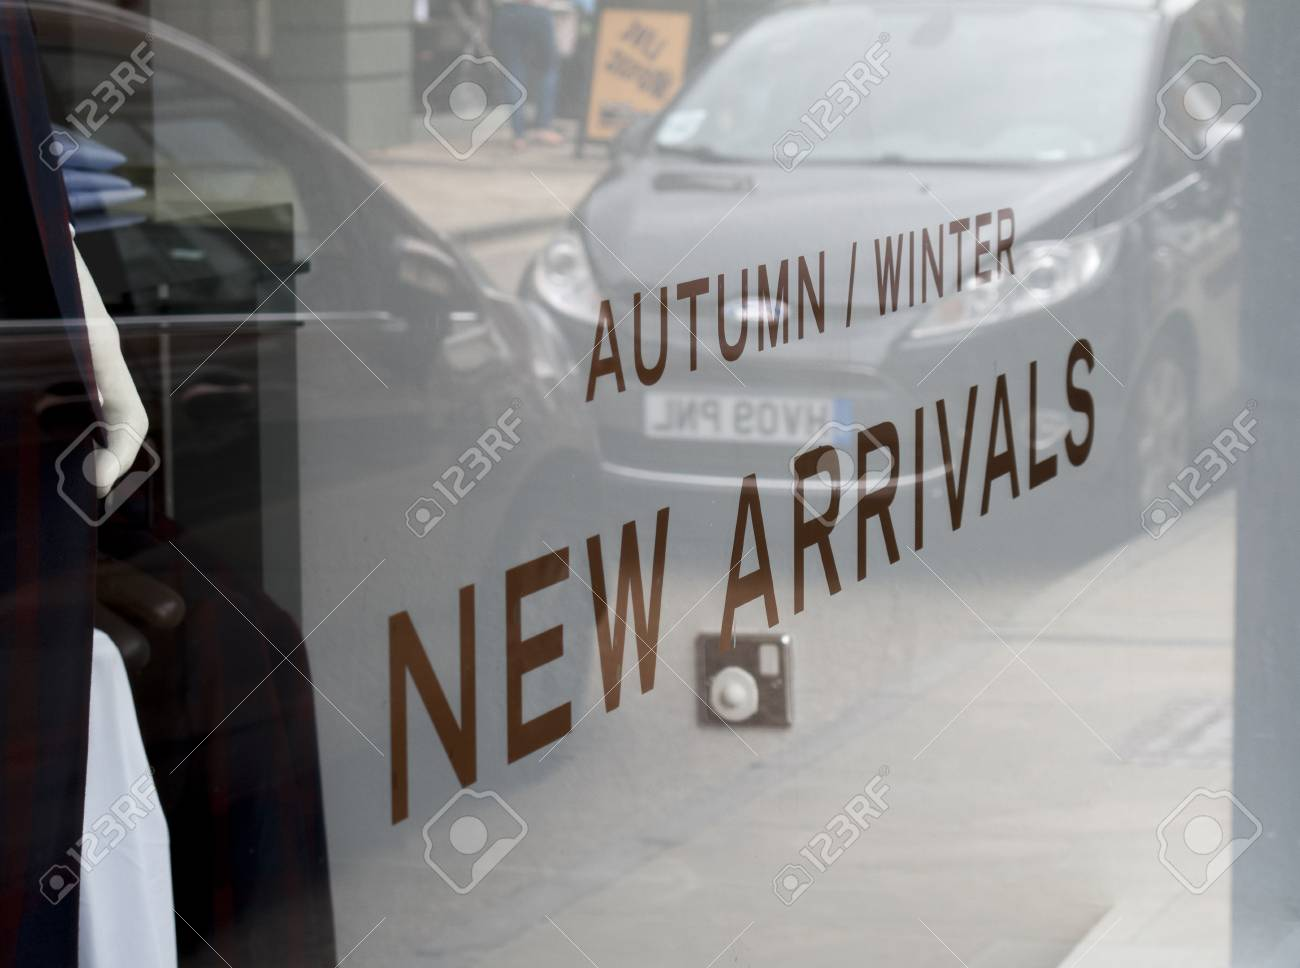 Autumn And Winter New Clothing Range Arrivals Sign In Retail Shop Window  Stock Photo, Picture And Royalty Free Image. Image 84306089.